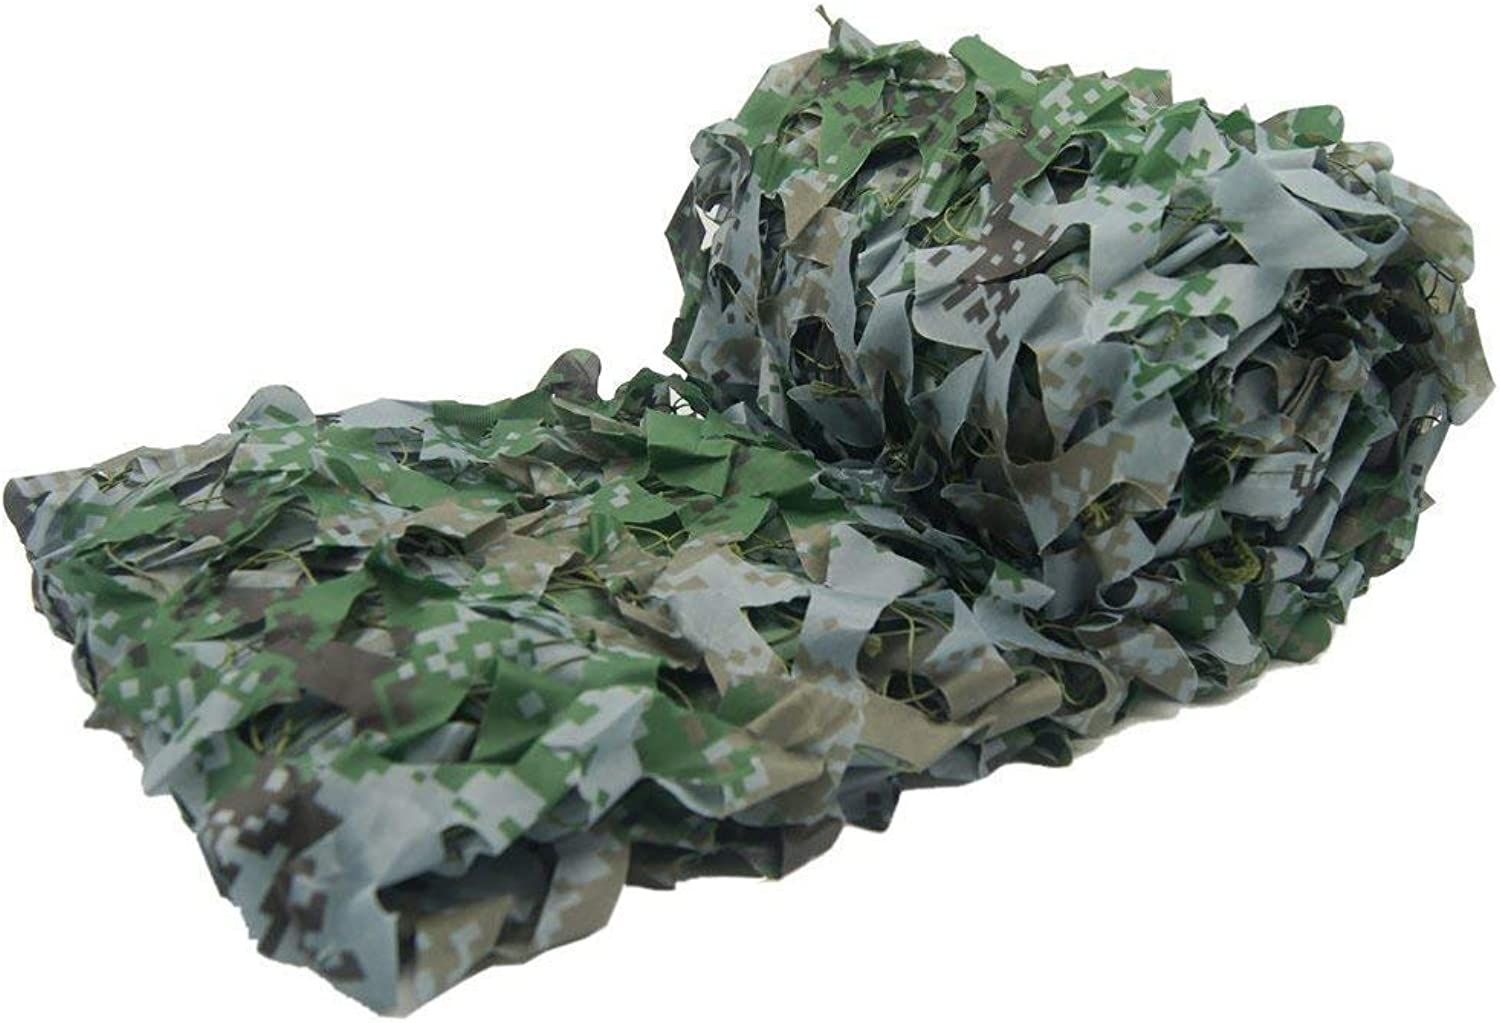 ATR Camouflage net for car, Dense and Robust, add reinforcing mesh Can be Used as a car Cover. Awning and Fairing Multiple, Woodland Digital Camo color